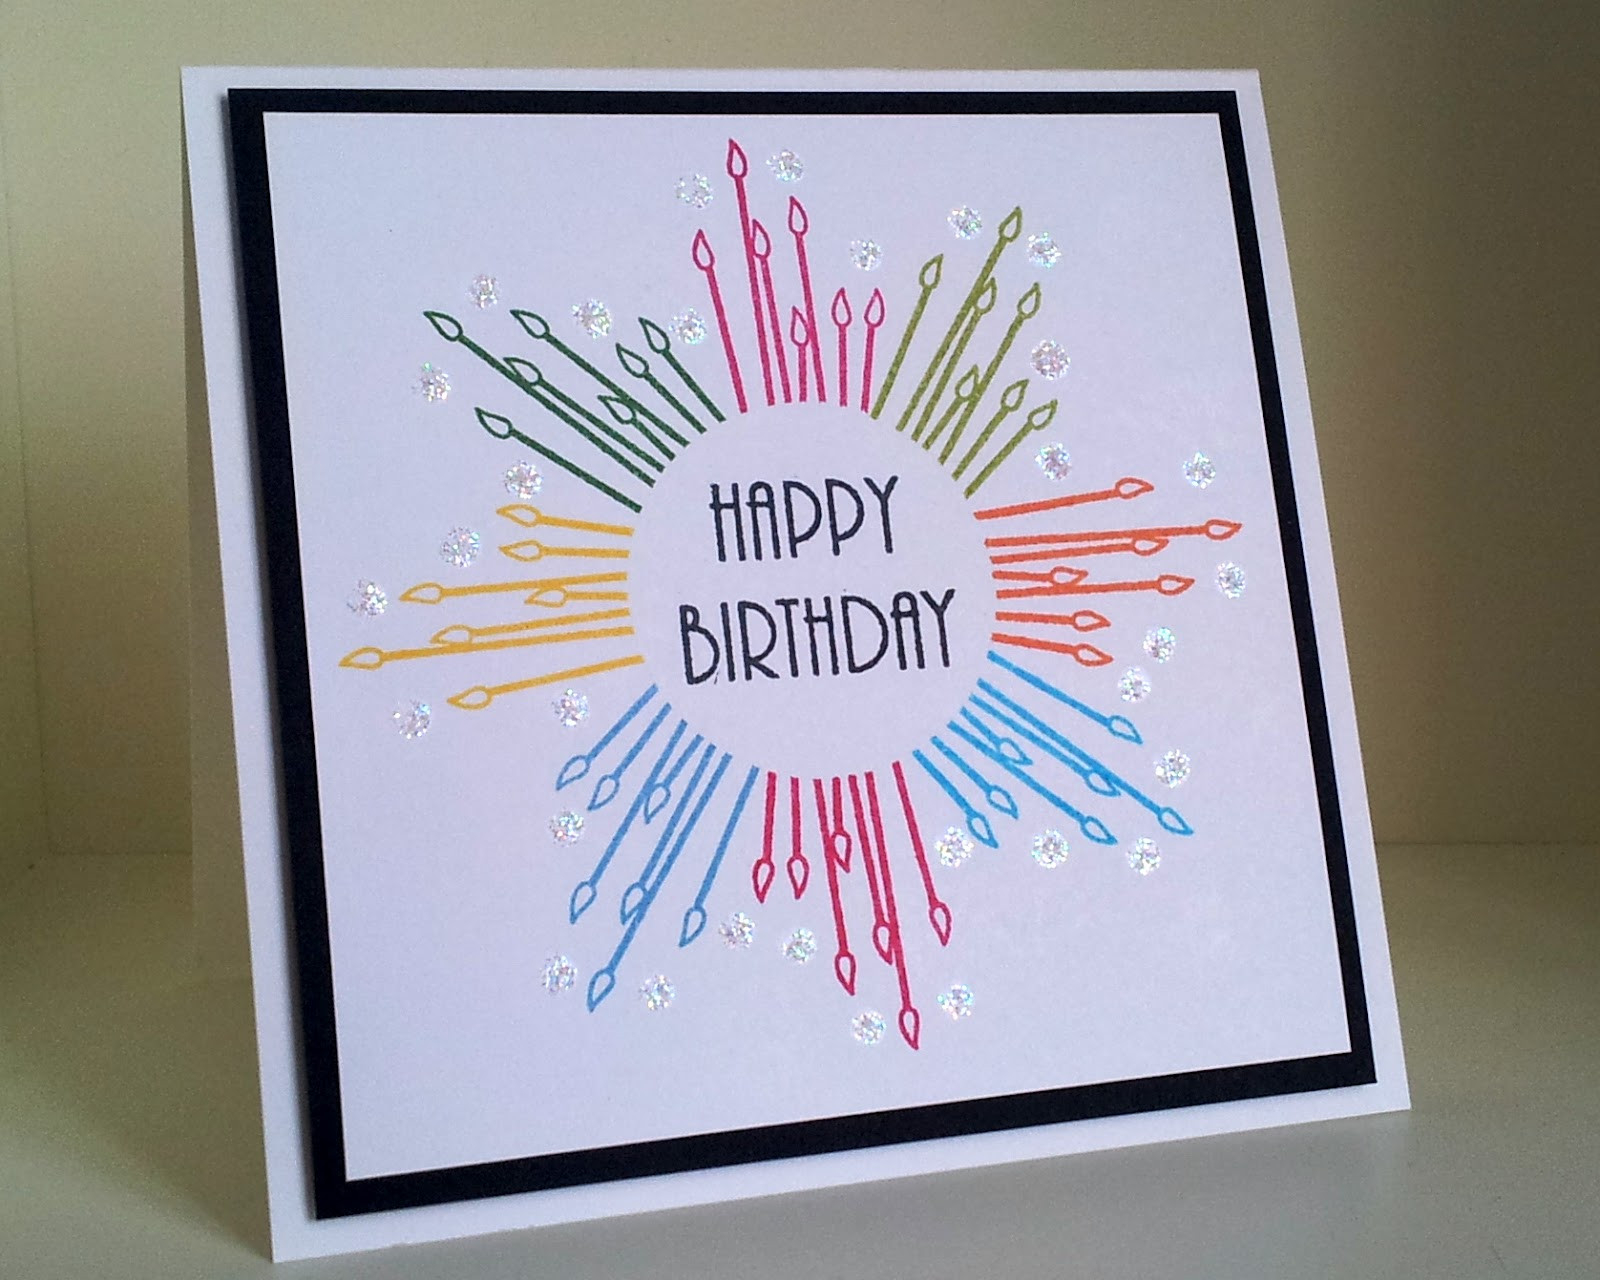 Ideas For Making Birthday Cards For Friends How To Make A Great Birthday Card Latest Good Ideas For Birthday